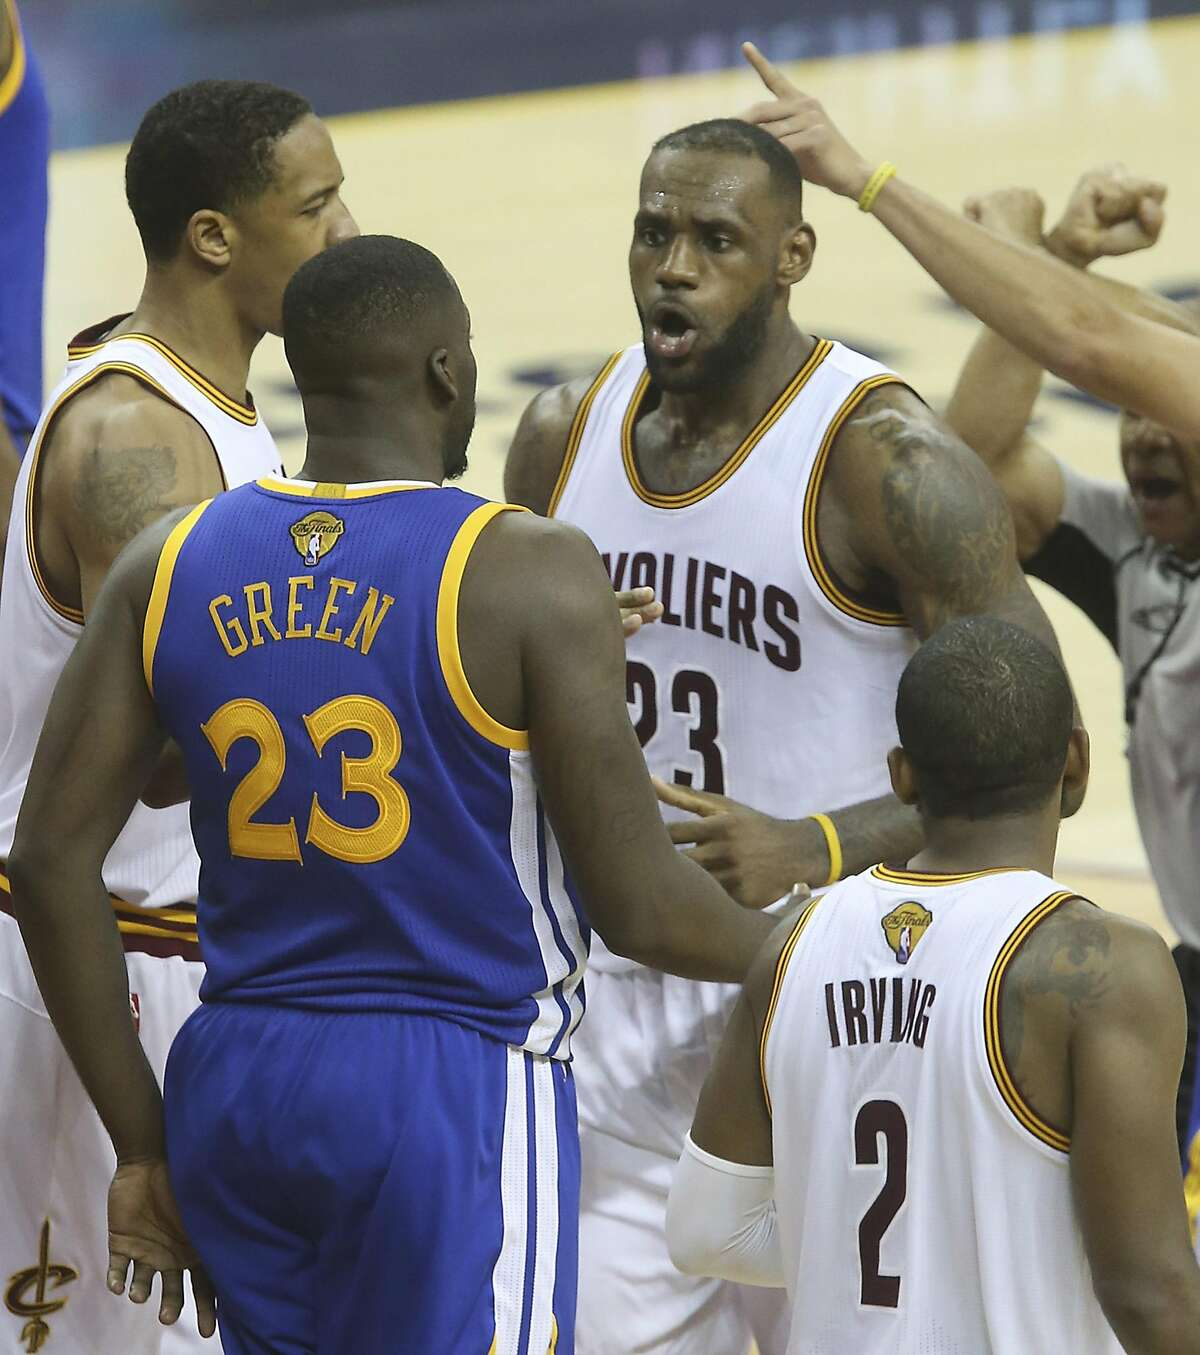 The Cleveland Cavaliers' LeBron James, middle, gets tangled with the Golden State Warriors' Draymond Green, left, during the fourth quarter in Game 4 of the NBA Finals at Quicken Loans Arena in Cleveland on Friday, June 10, 2016. The Warriors won, 108-97, for a 3-1 series lead. (Phil Masturzo/Akron Beacon Journal/TNS)